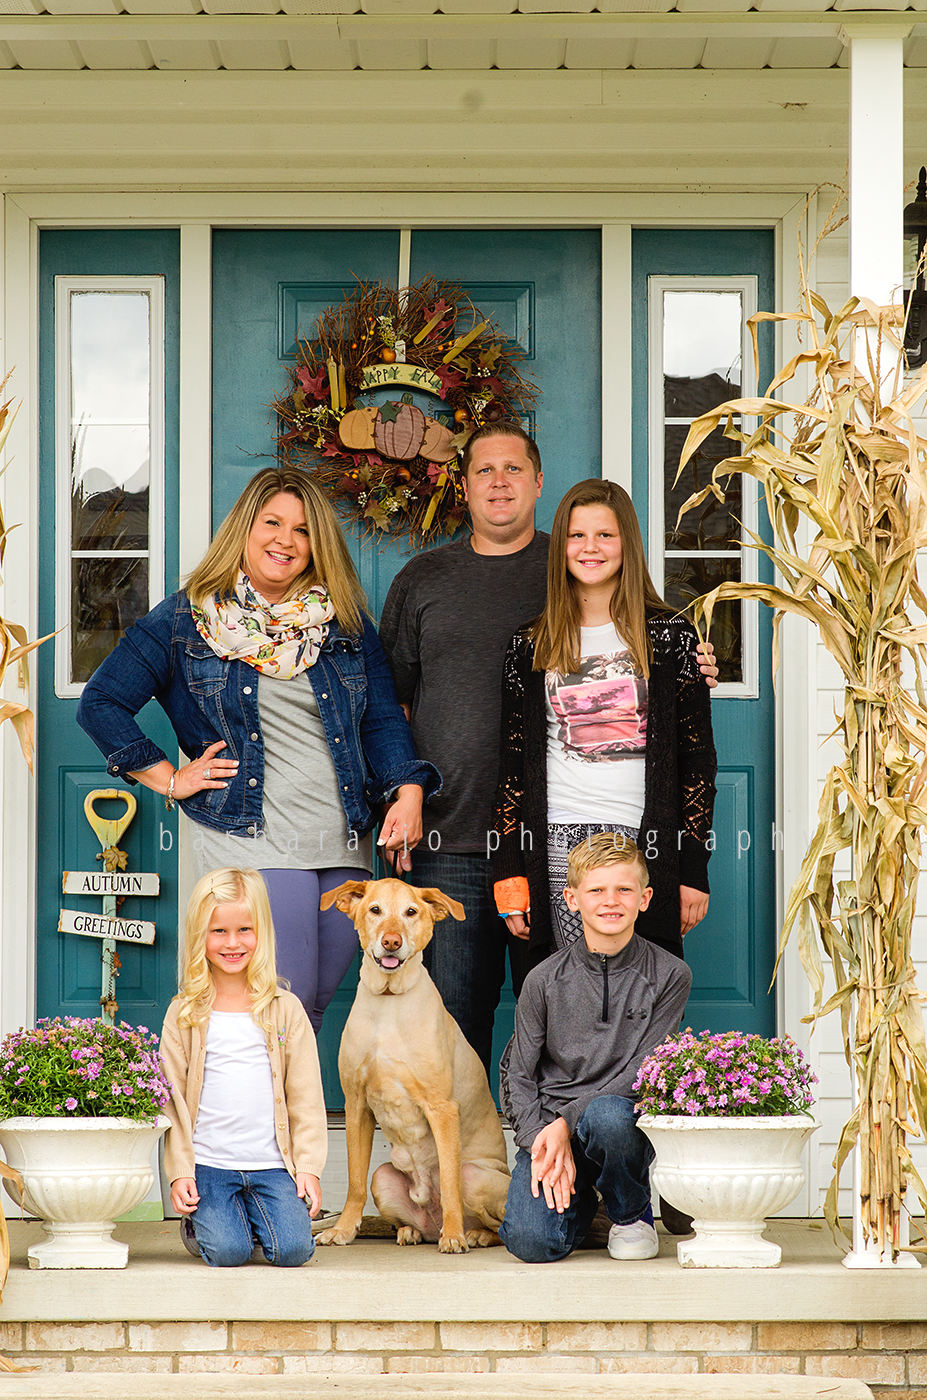 bjp-family-autumn-child-front-porch-dover-ohio-photographer-children-tyson10.png